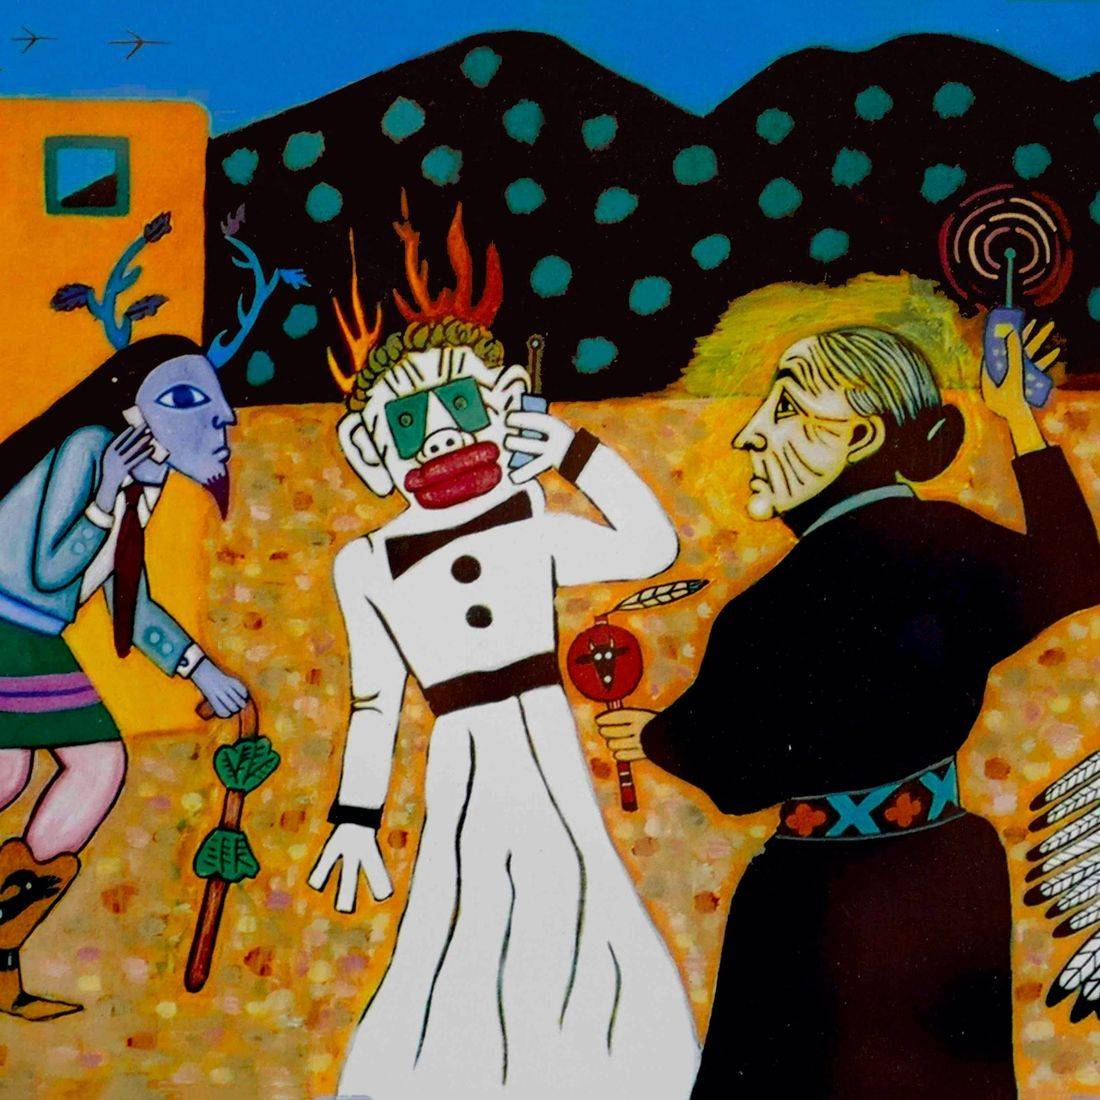 Southwest, Cellphone, Georgia O'Keeffe, Zozobra, Roswell Alien, Indian Dancer